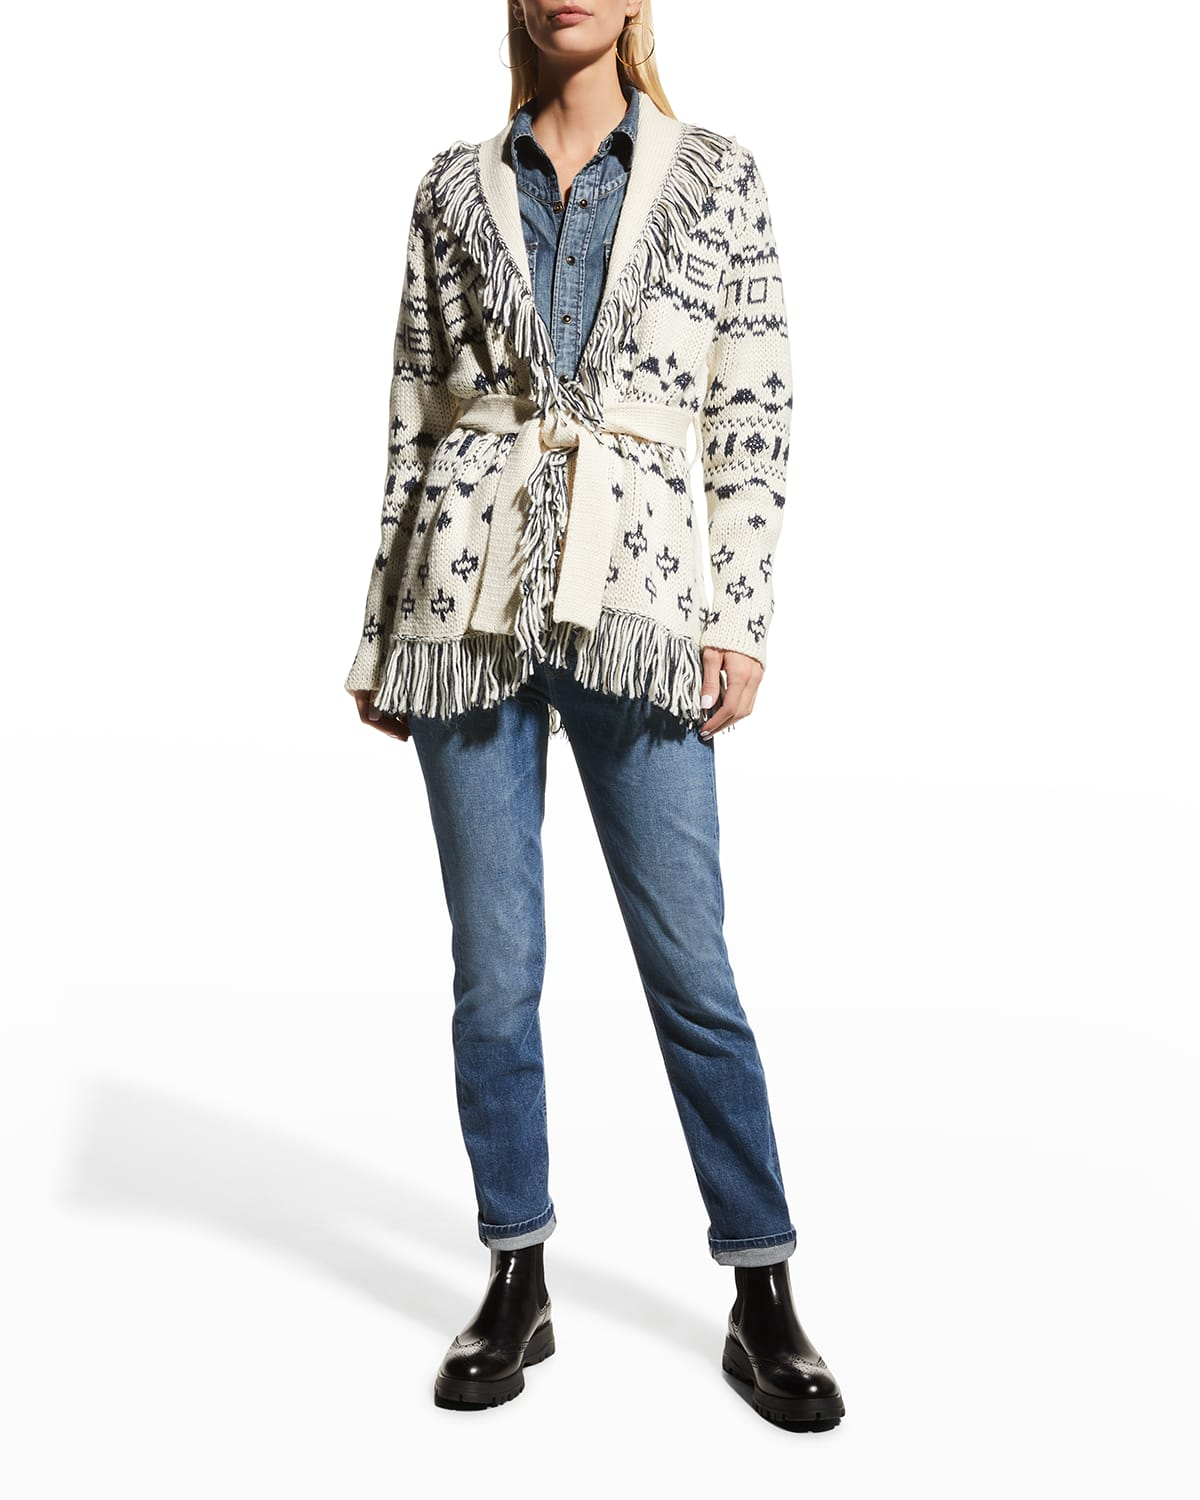 The Belted Short Cardigan